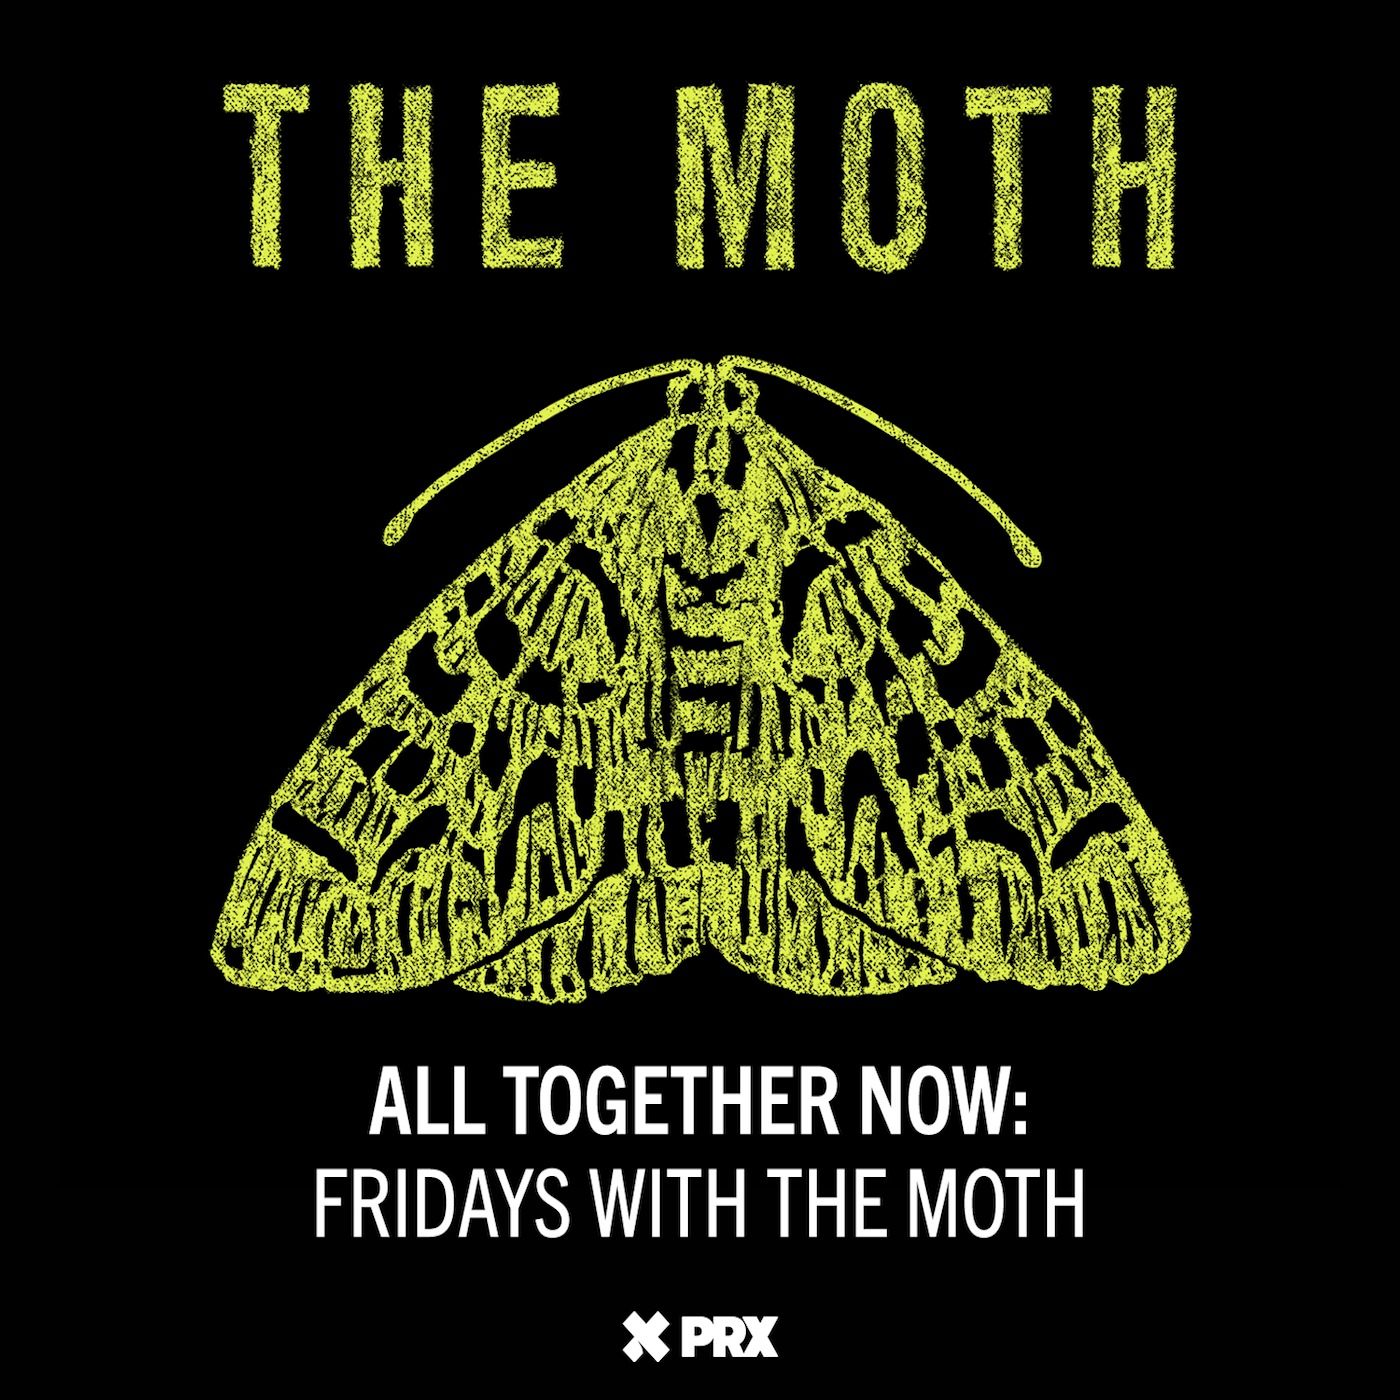 All Together Now: Fridays with The Moth - Annalise Raziq & Wilson Portorreal